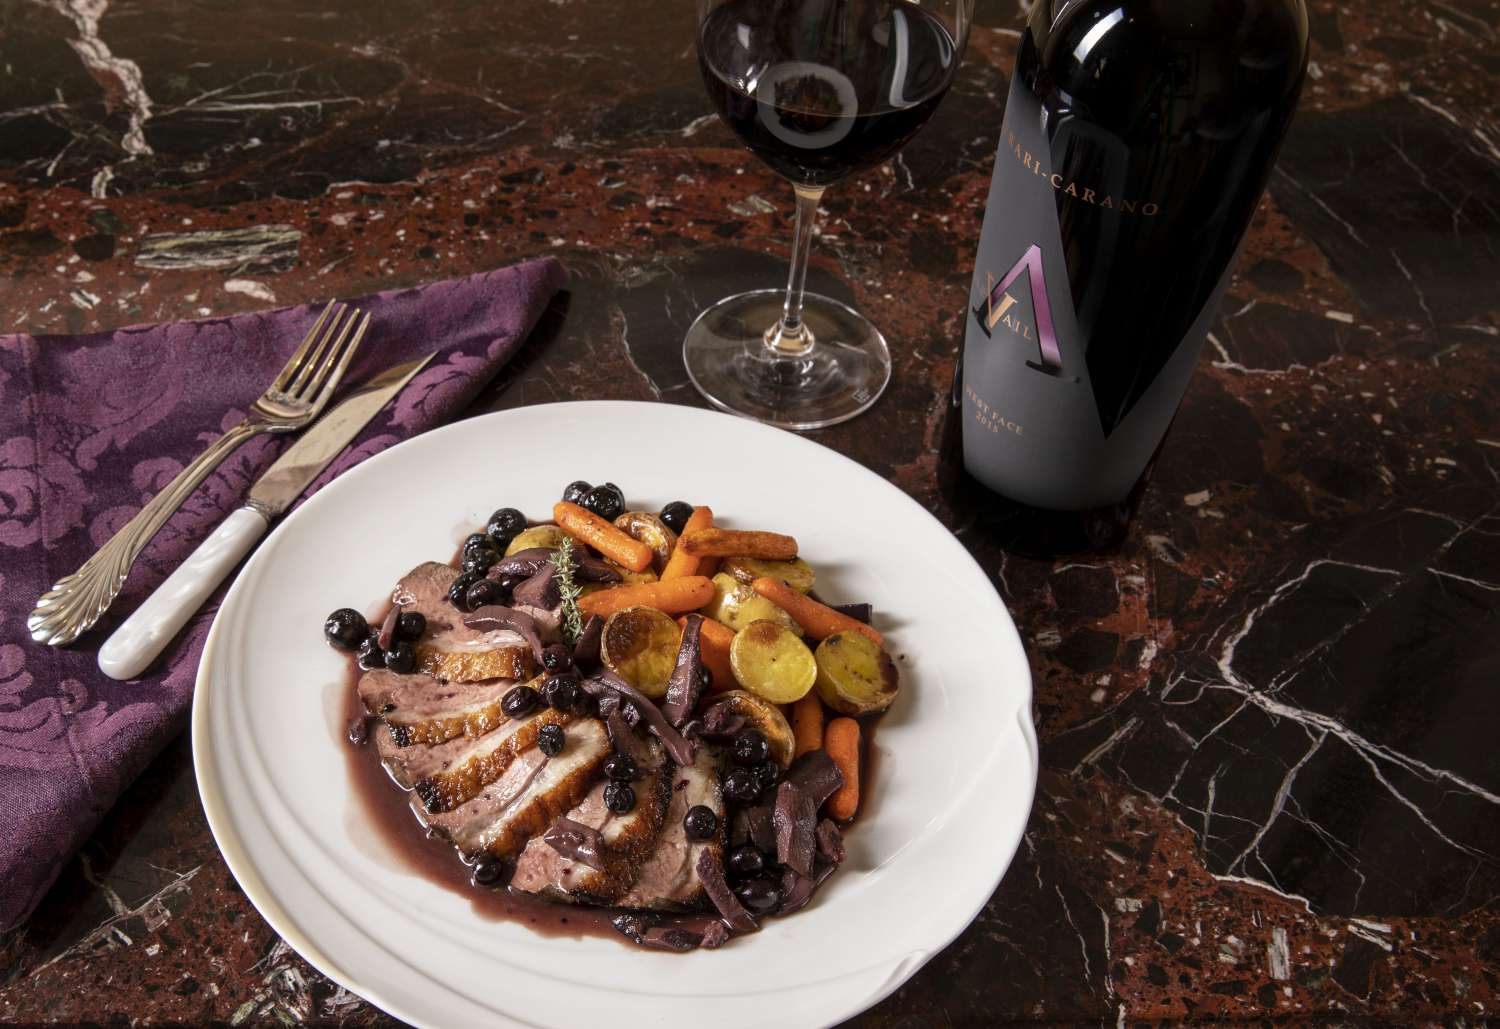 Pan Roasted Duck Breast With Blueberries Ferrari Carano